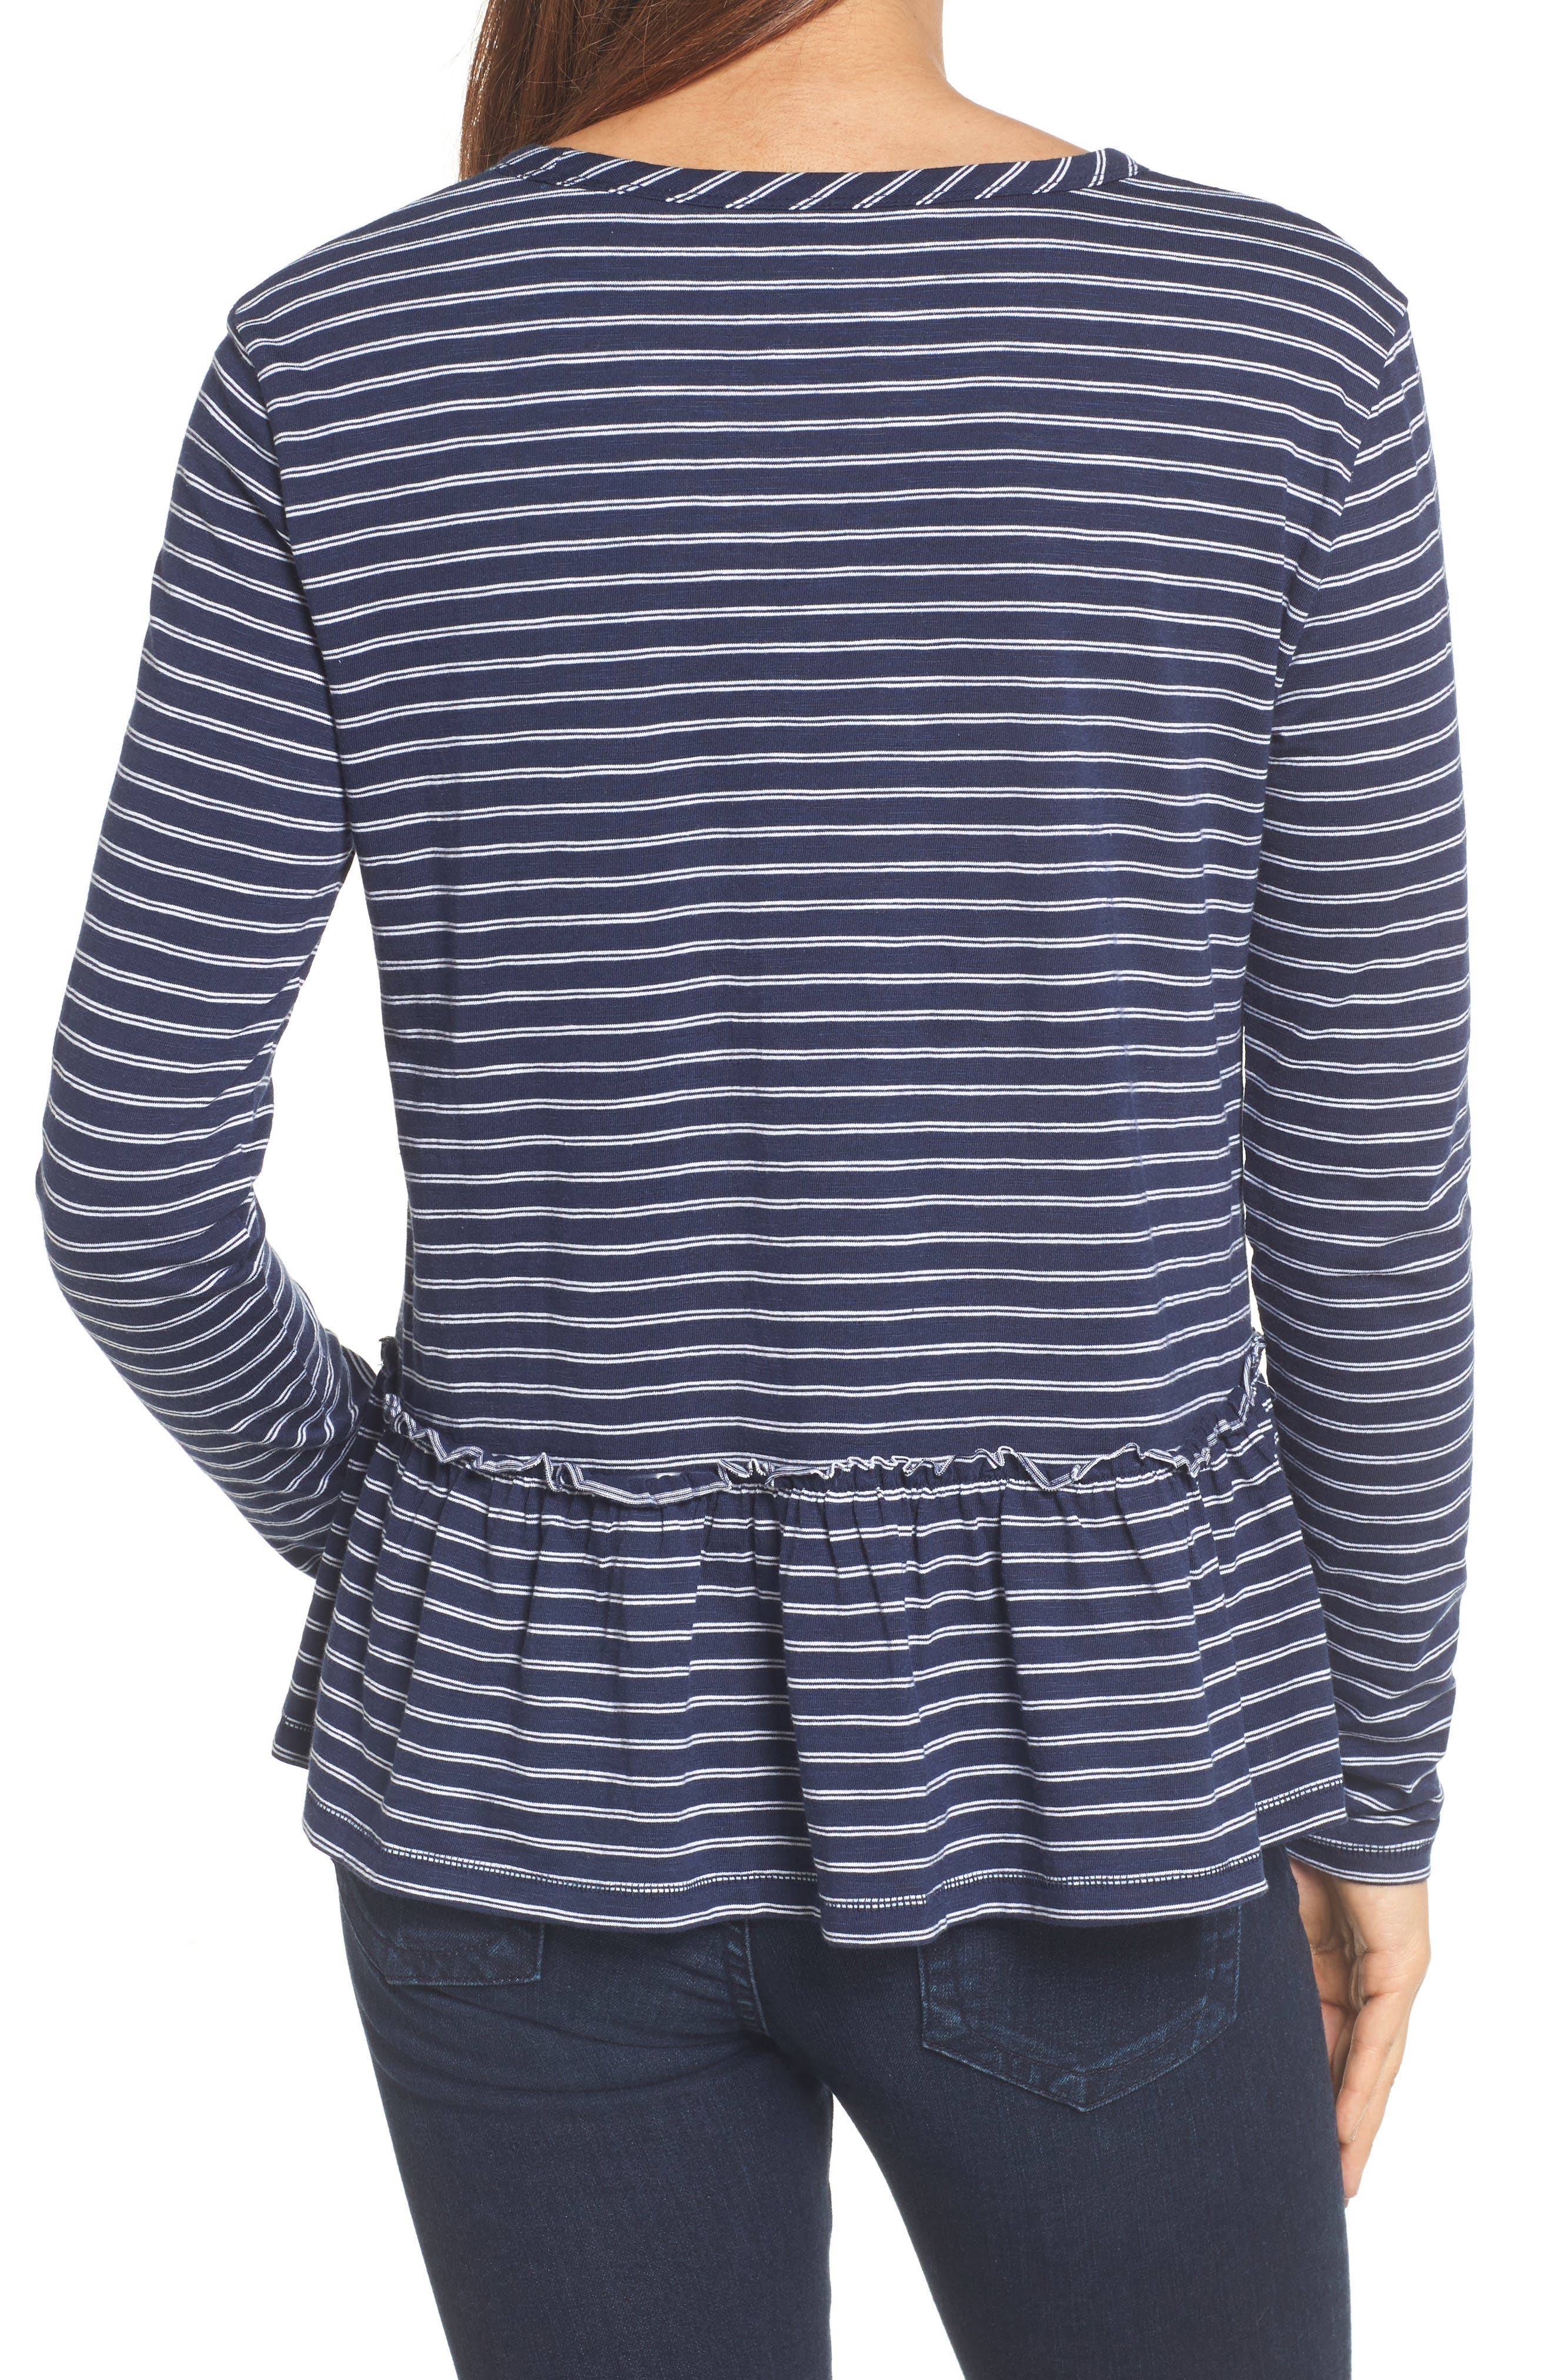 Peplum Tee,                             Alternate thumbnail 2, color,                             Navy- White Double Stripe